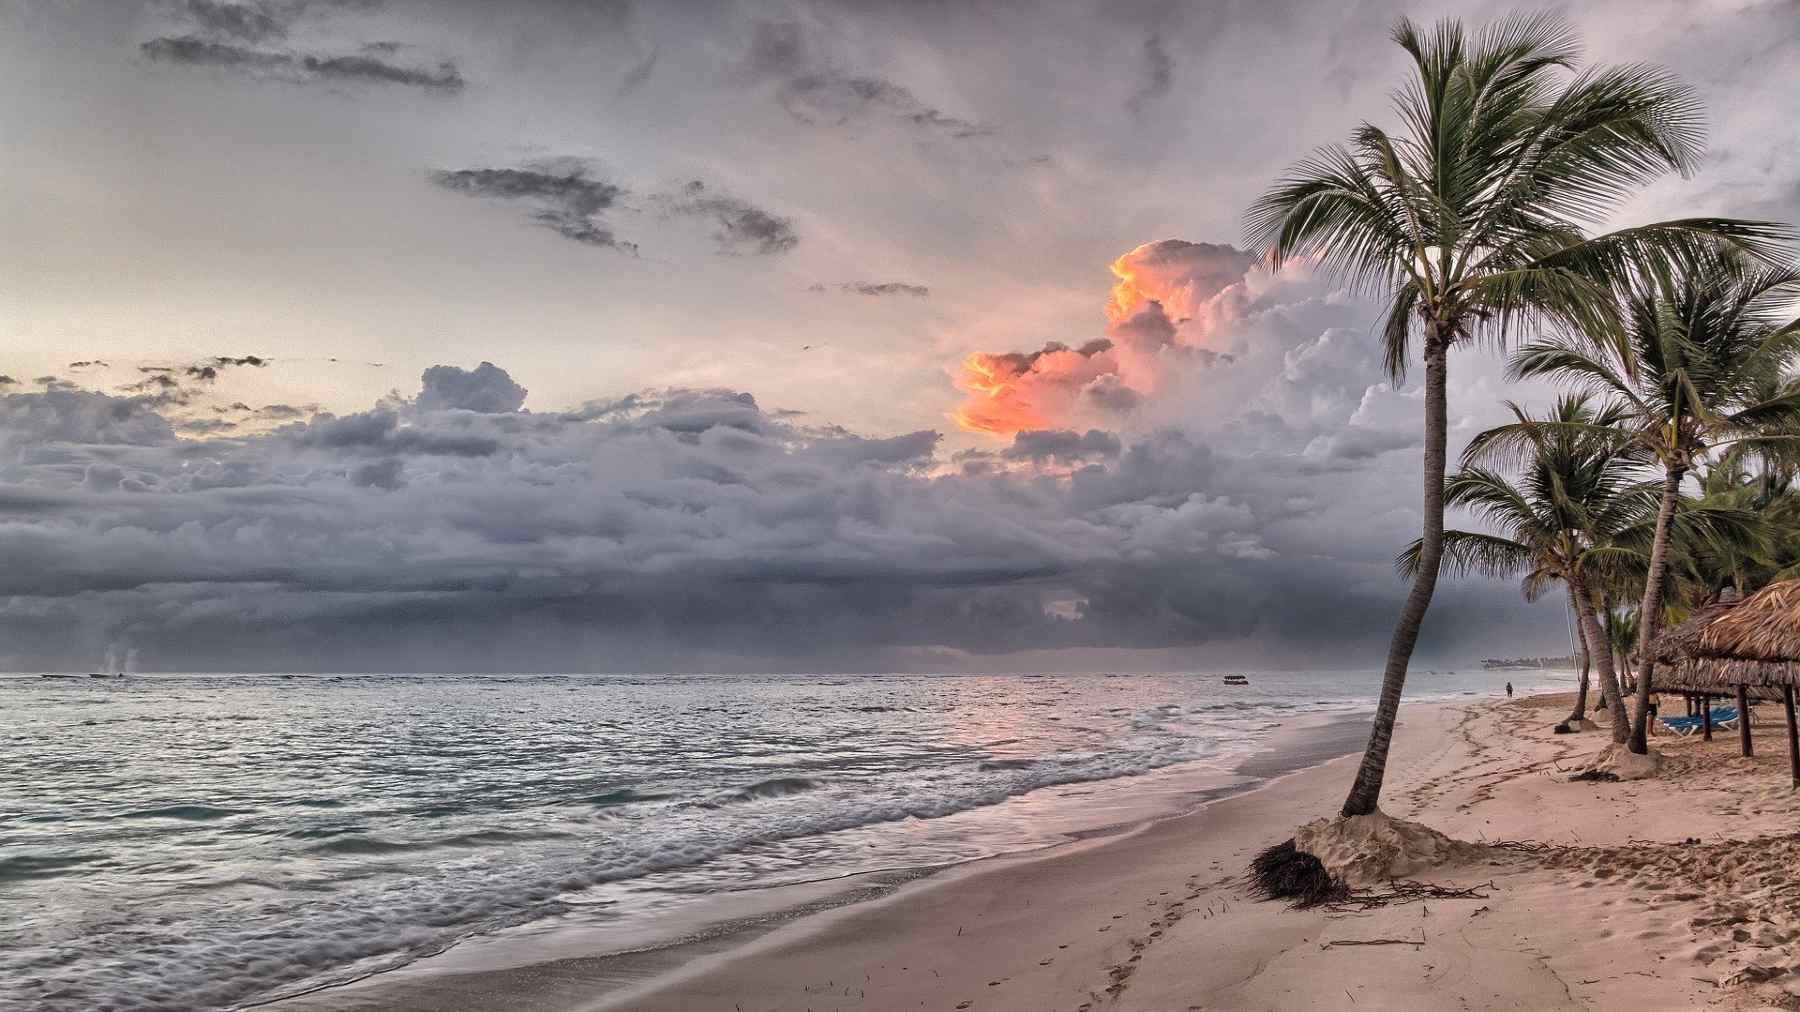 Dominican Republic Beach sunset